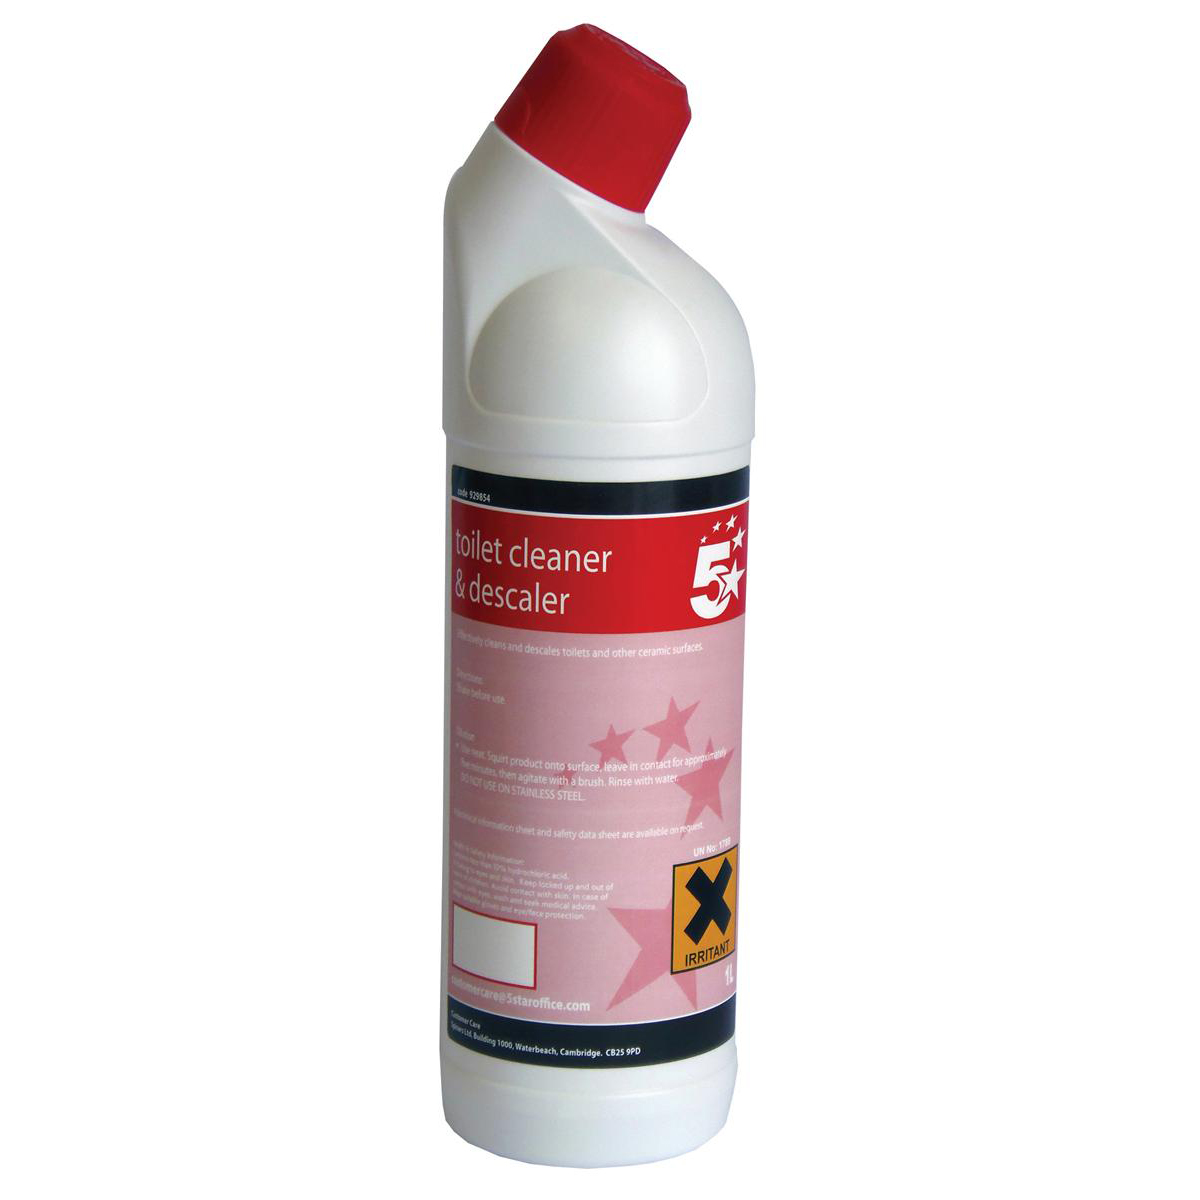 5 Star Facilities Toilet Cleaner & Descaler 1 Litre